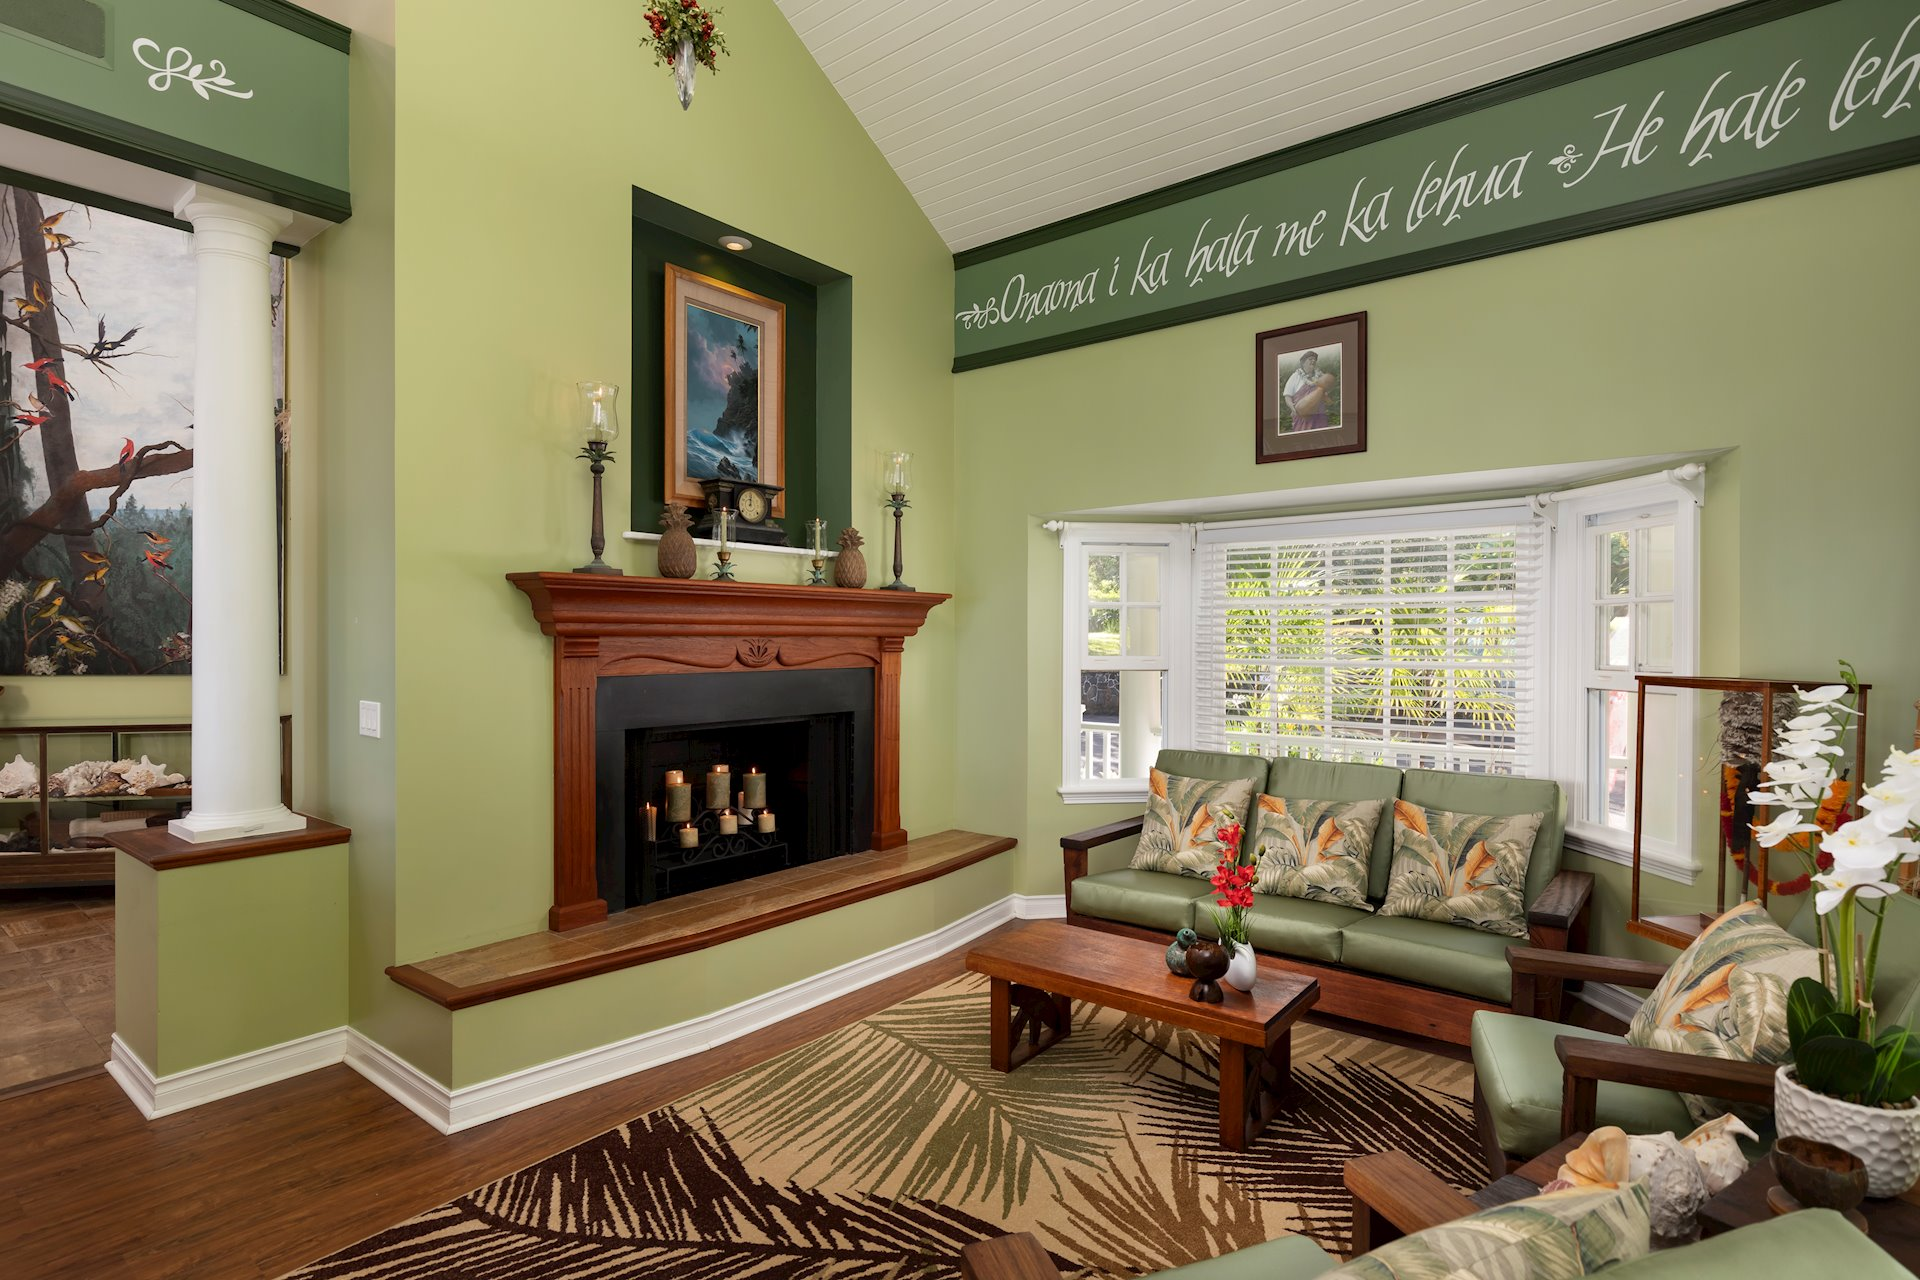 The Living Room with fireplace and patinaed wood flooring.